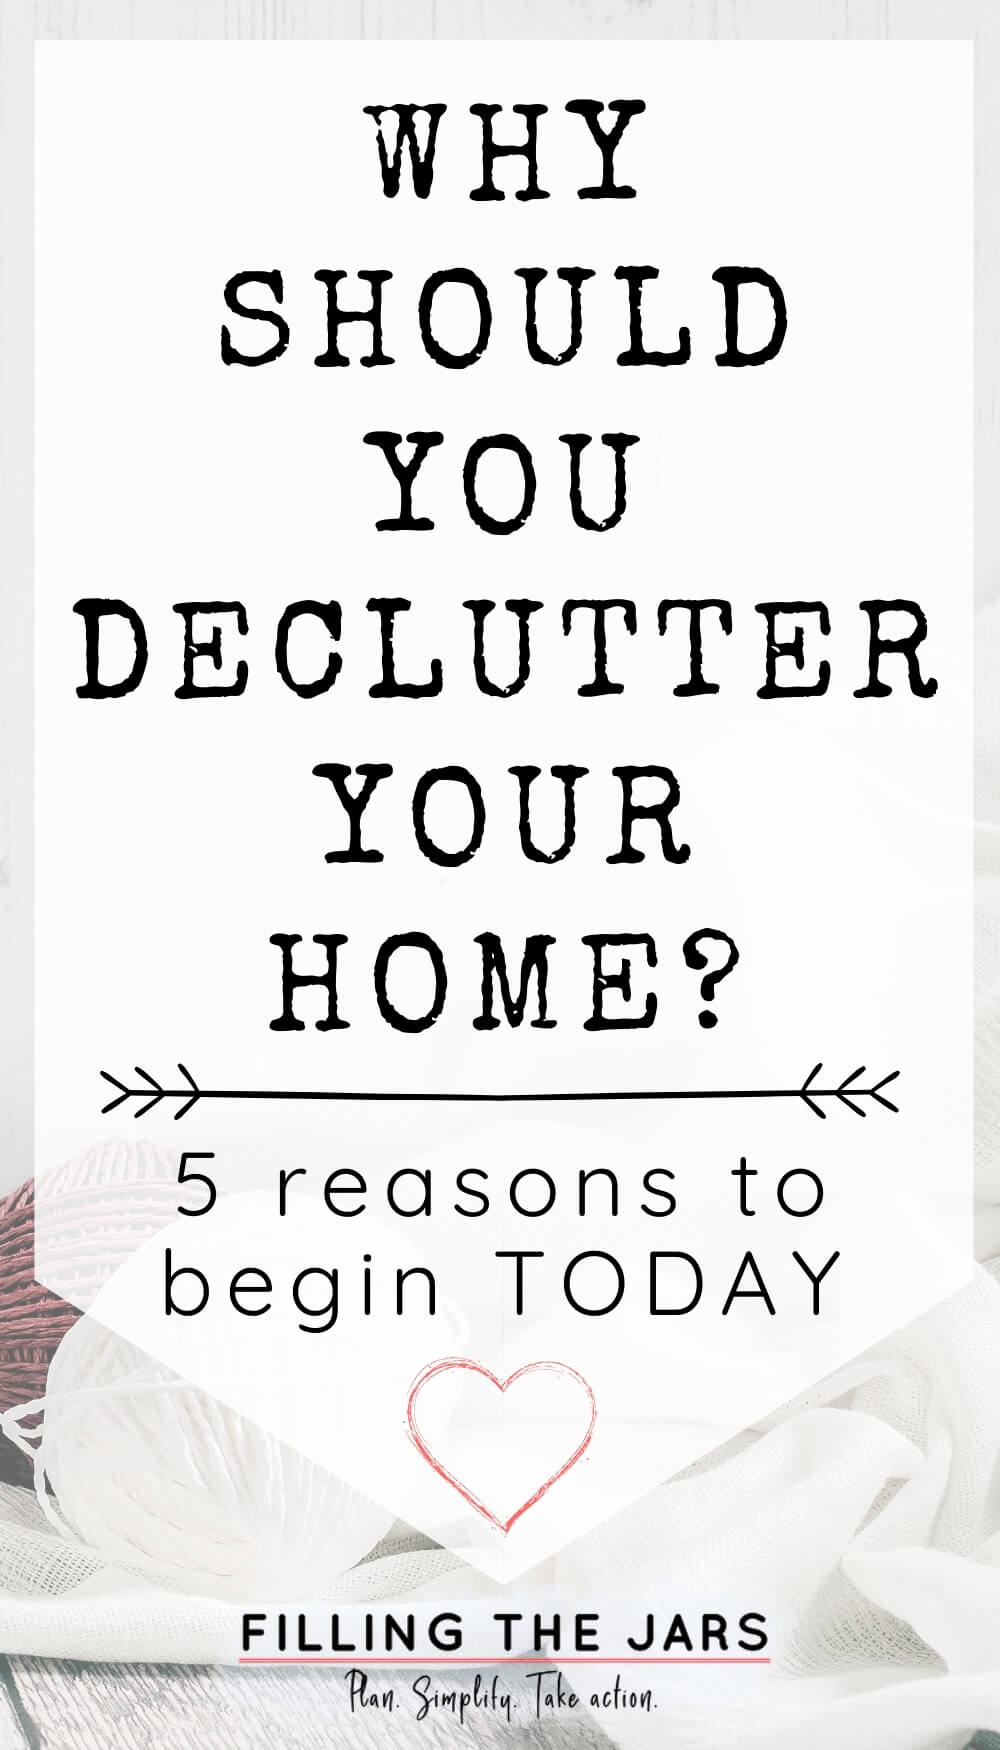 text 5 reasons why you should declutter your home on white background over faded image of fabric and string against white wall